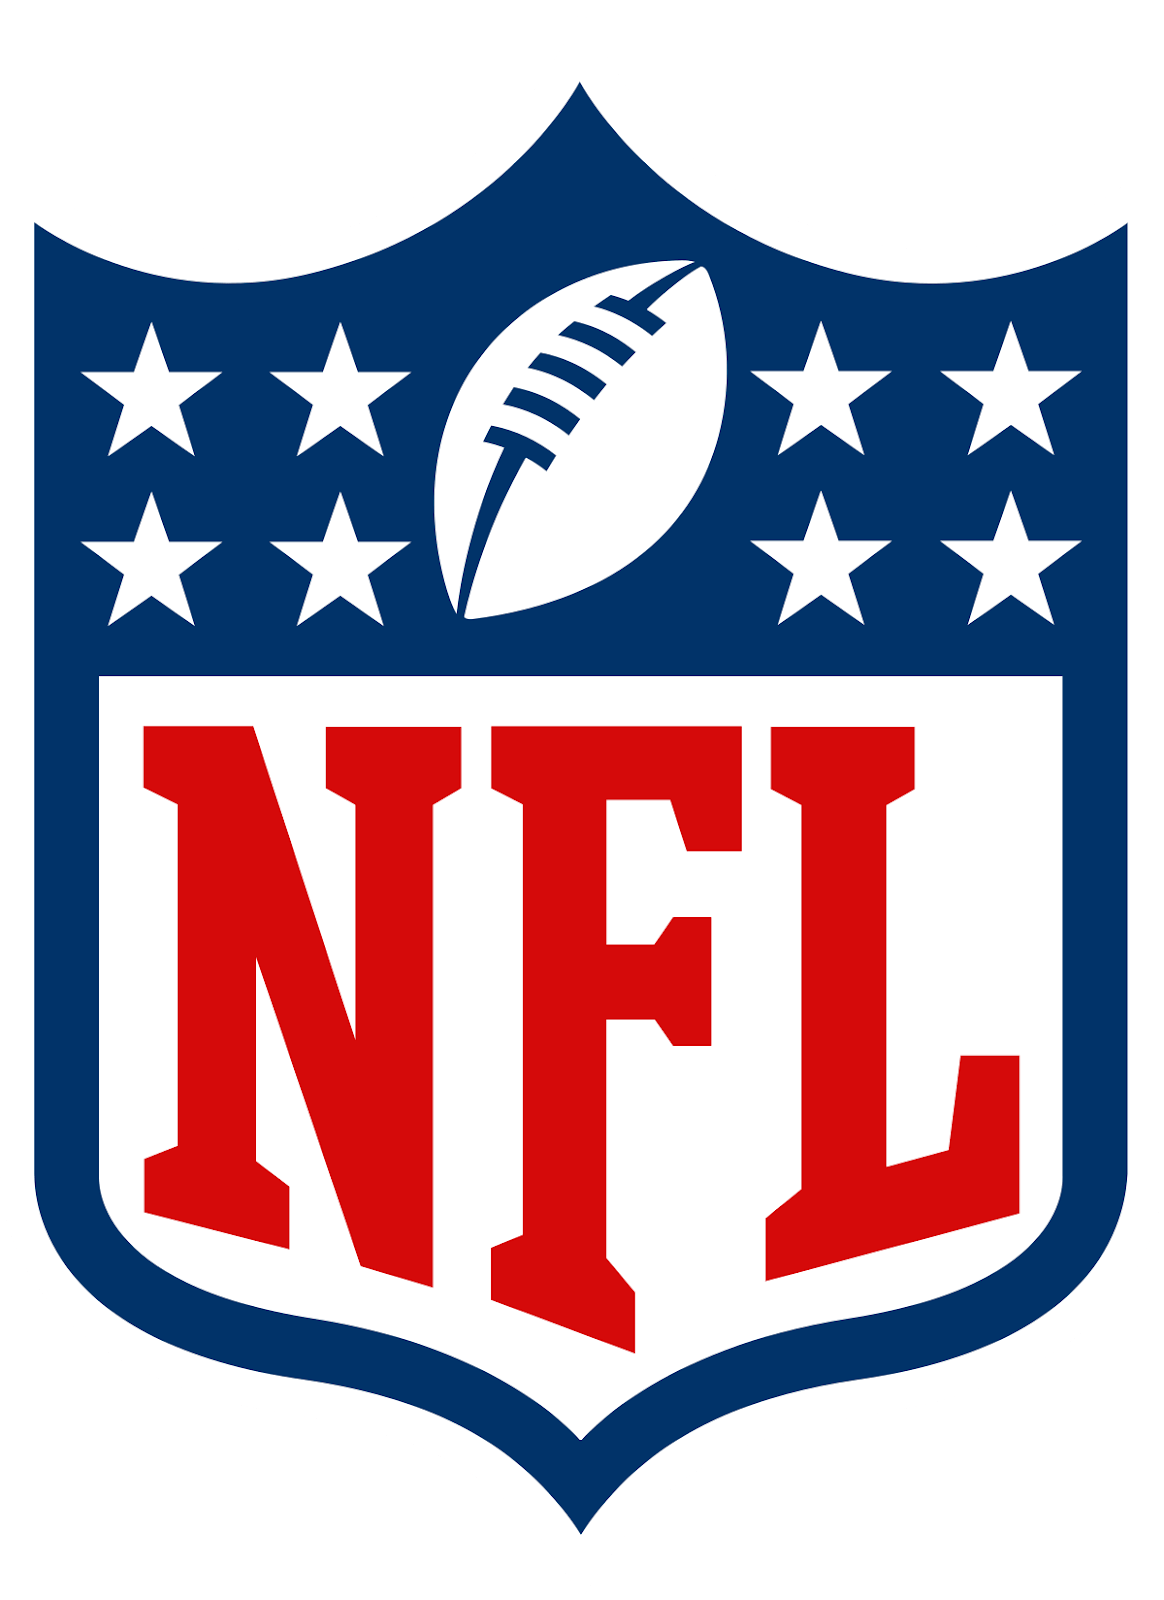 100 Years of NFL- 1920-2020